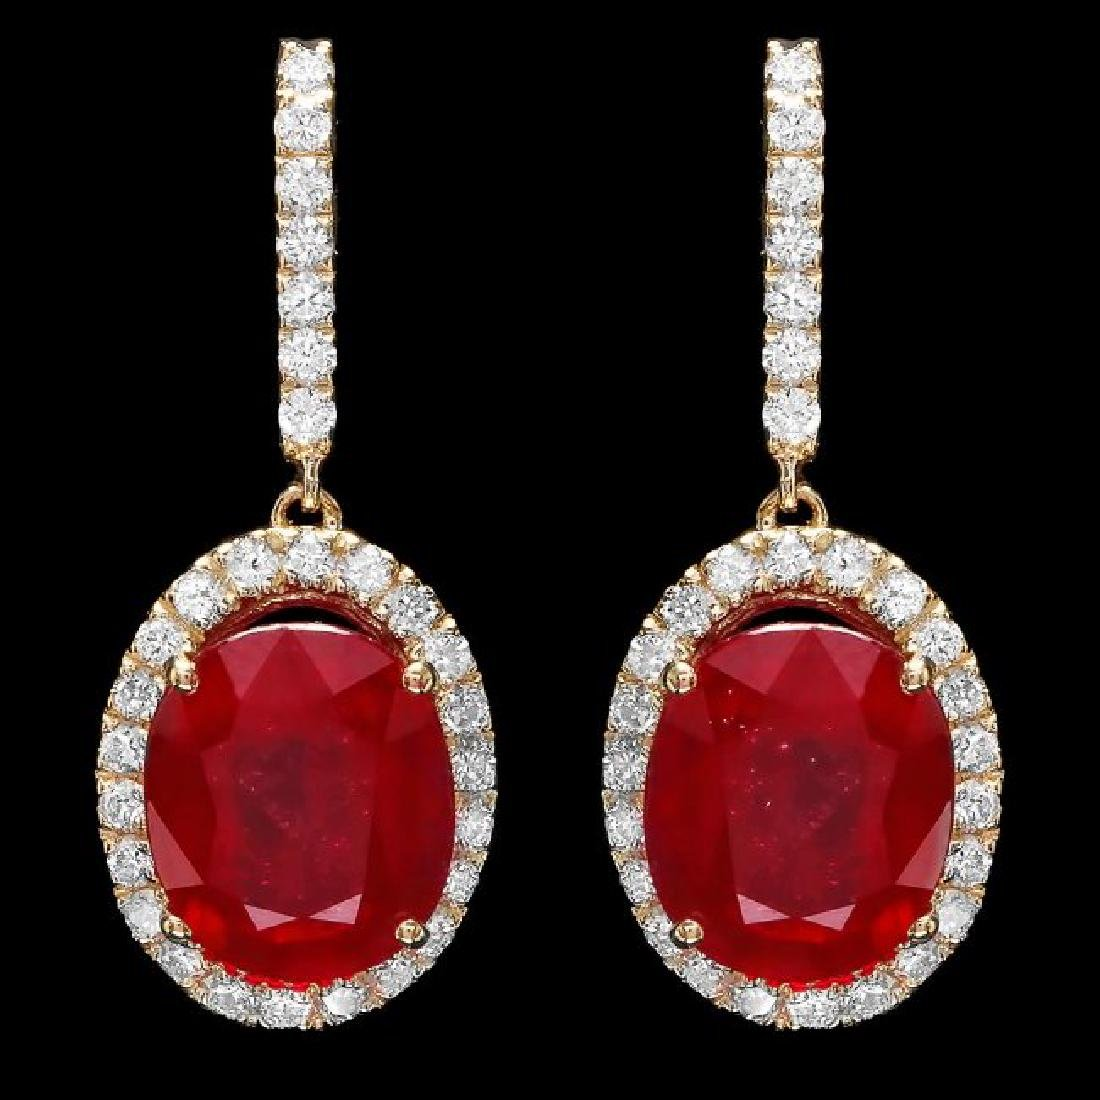 14k Gold 13.00ct Ruby 1.50ct Diamond Earrings